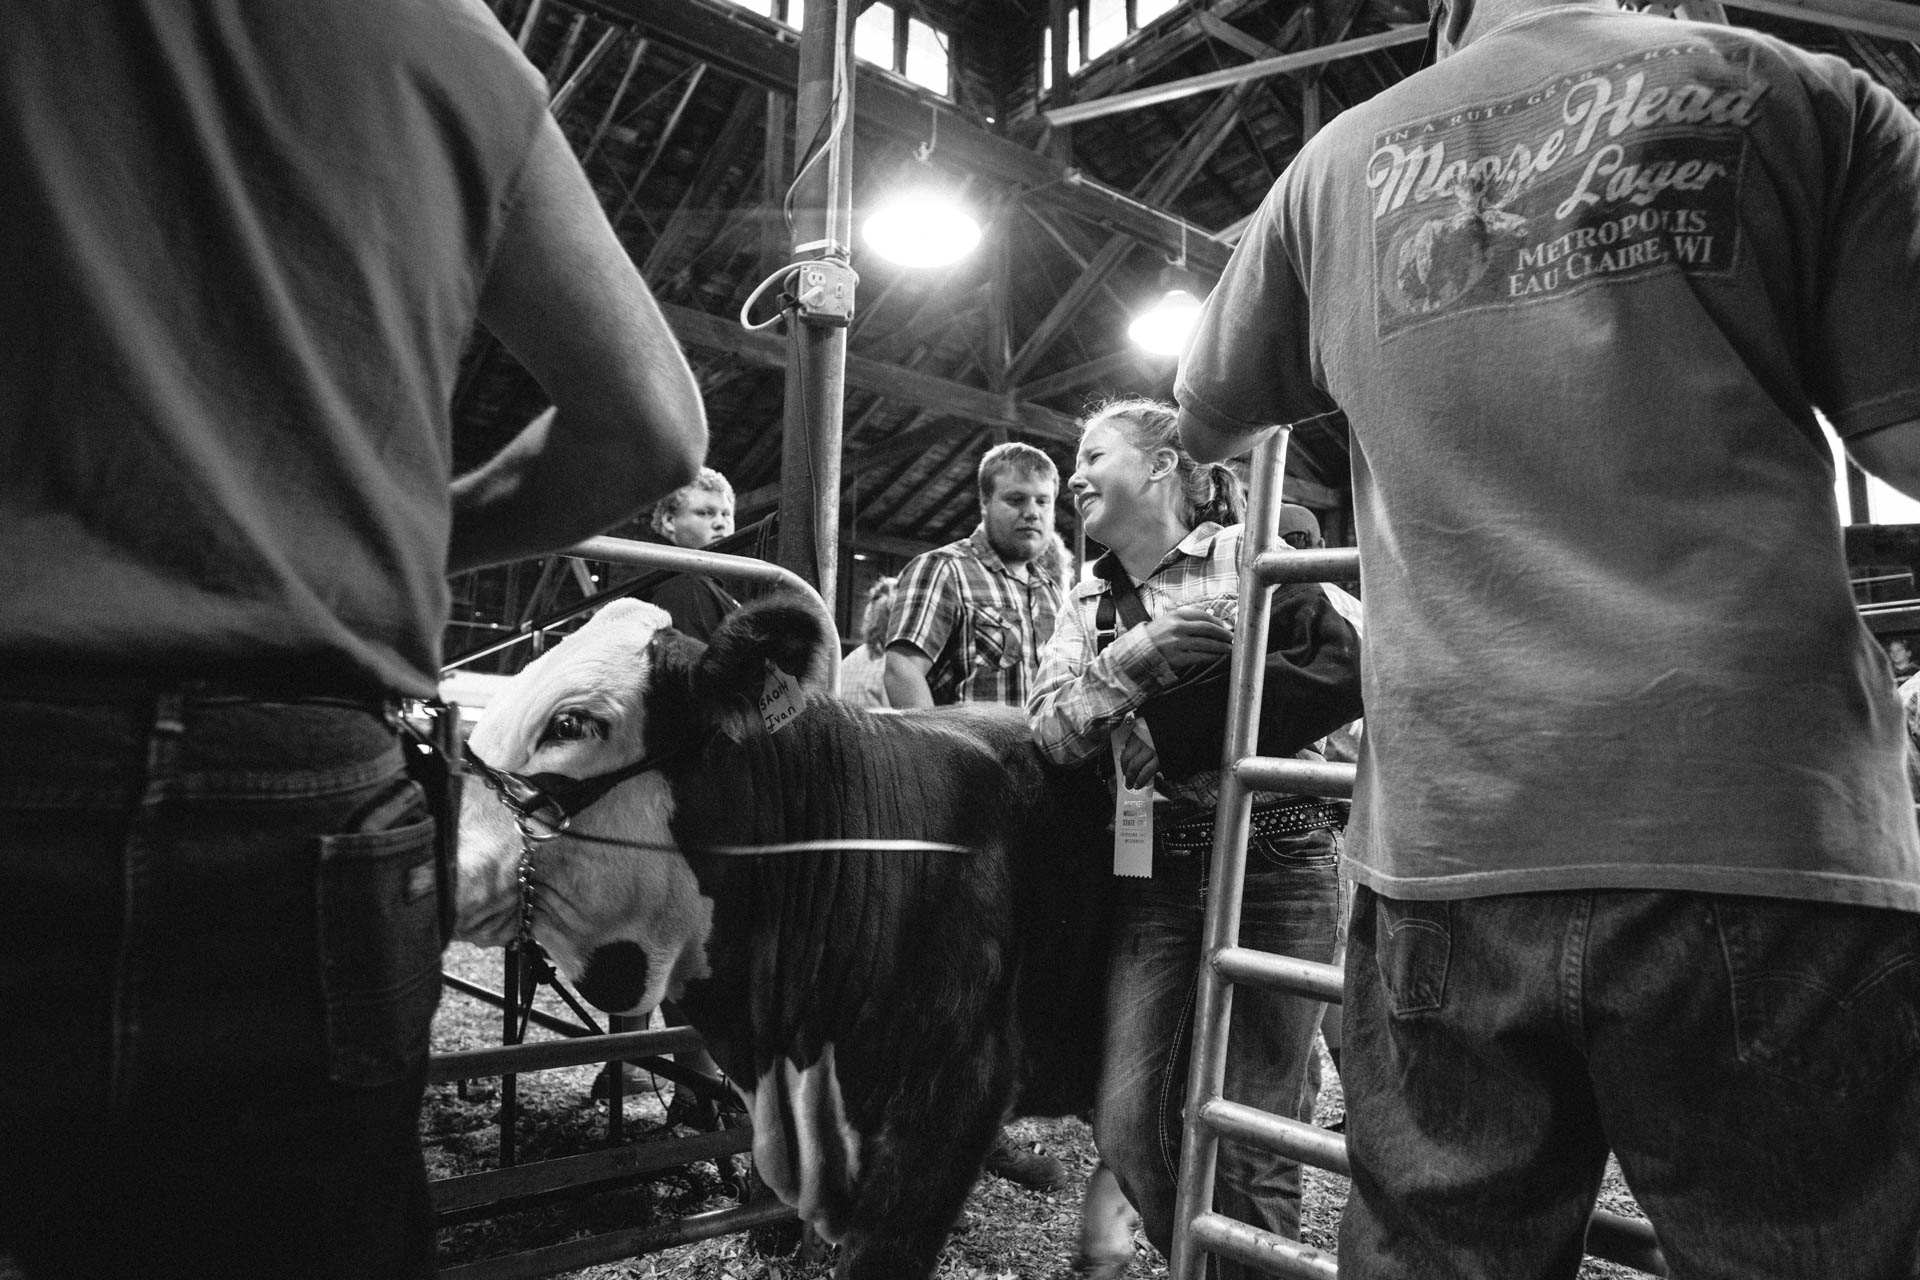 northern-wisconsin-state-fair-cow-hurt-girls-arm-in-sling